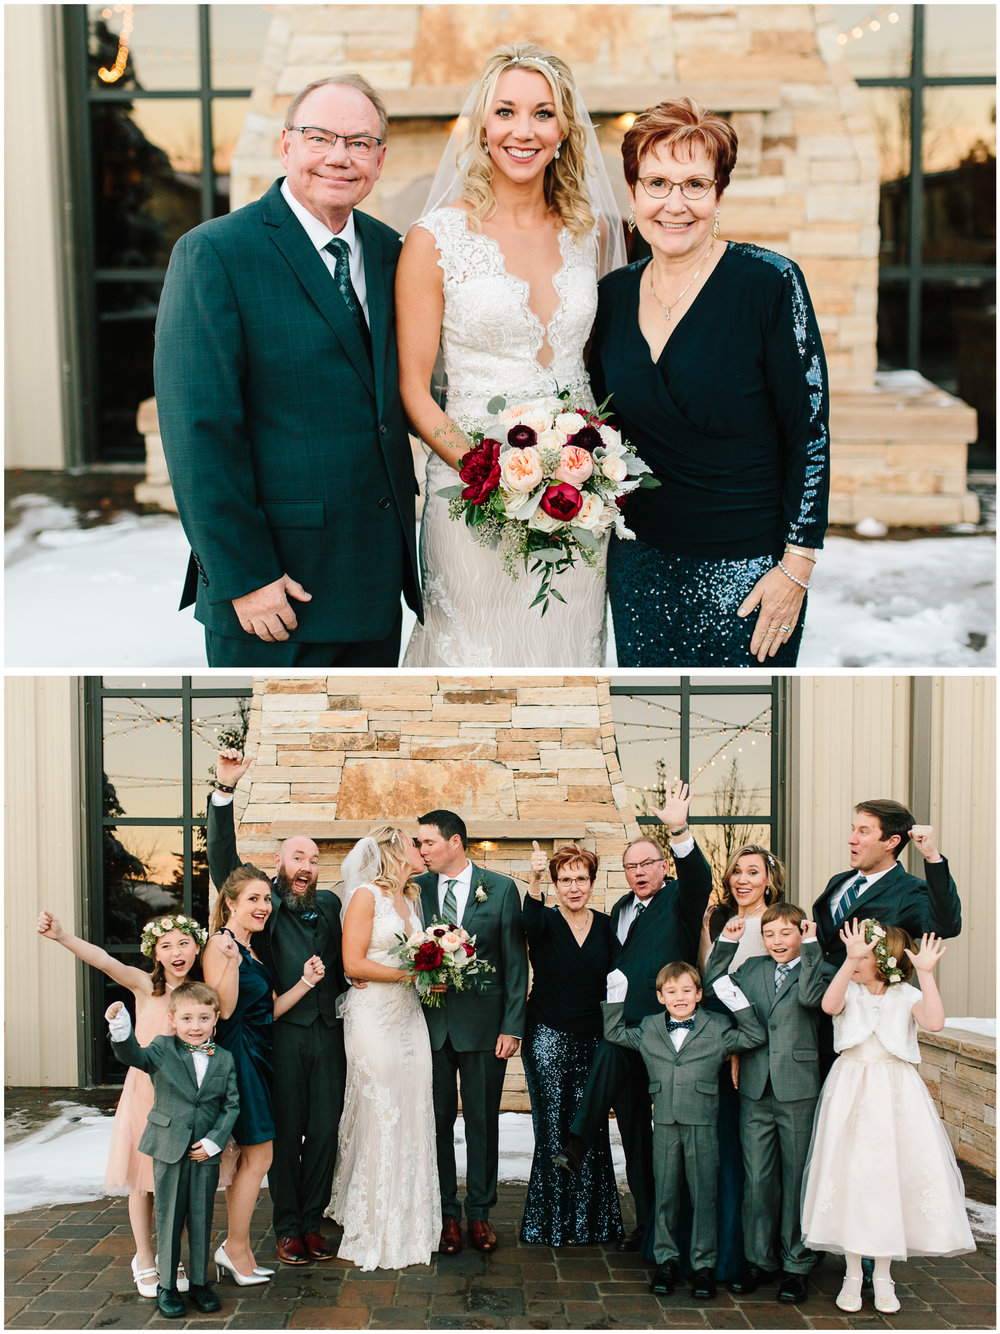 spruce_mountain_ranch_wedding_37.jpg